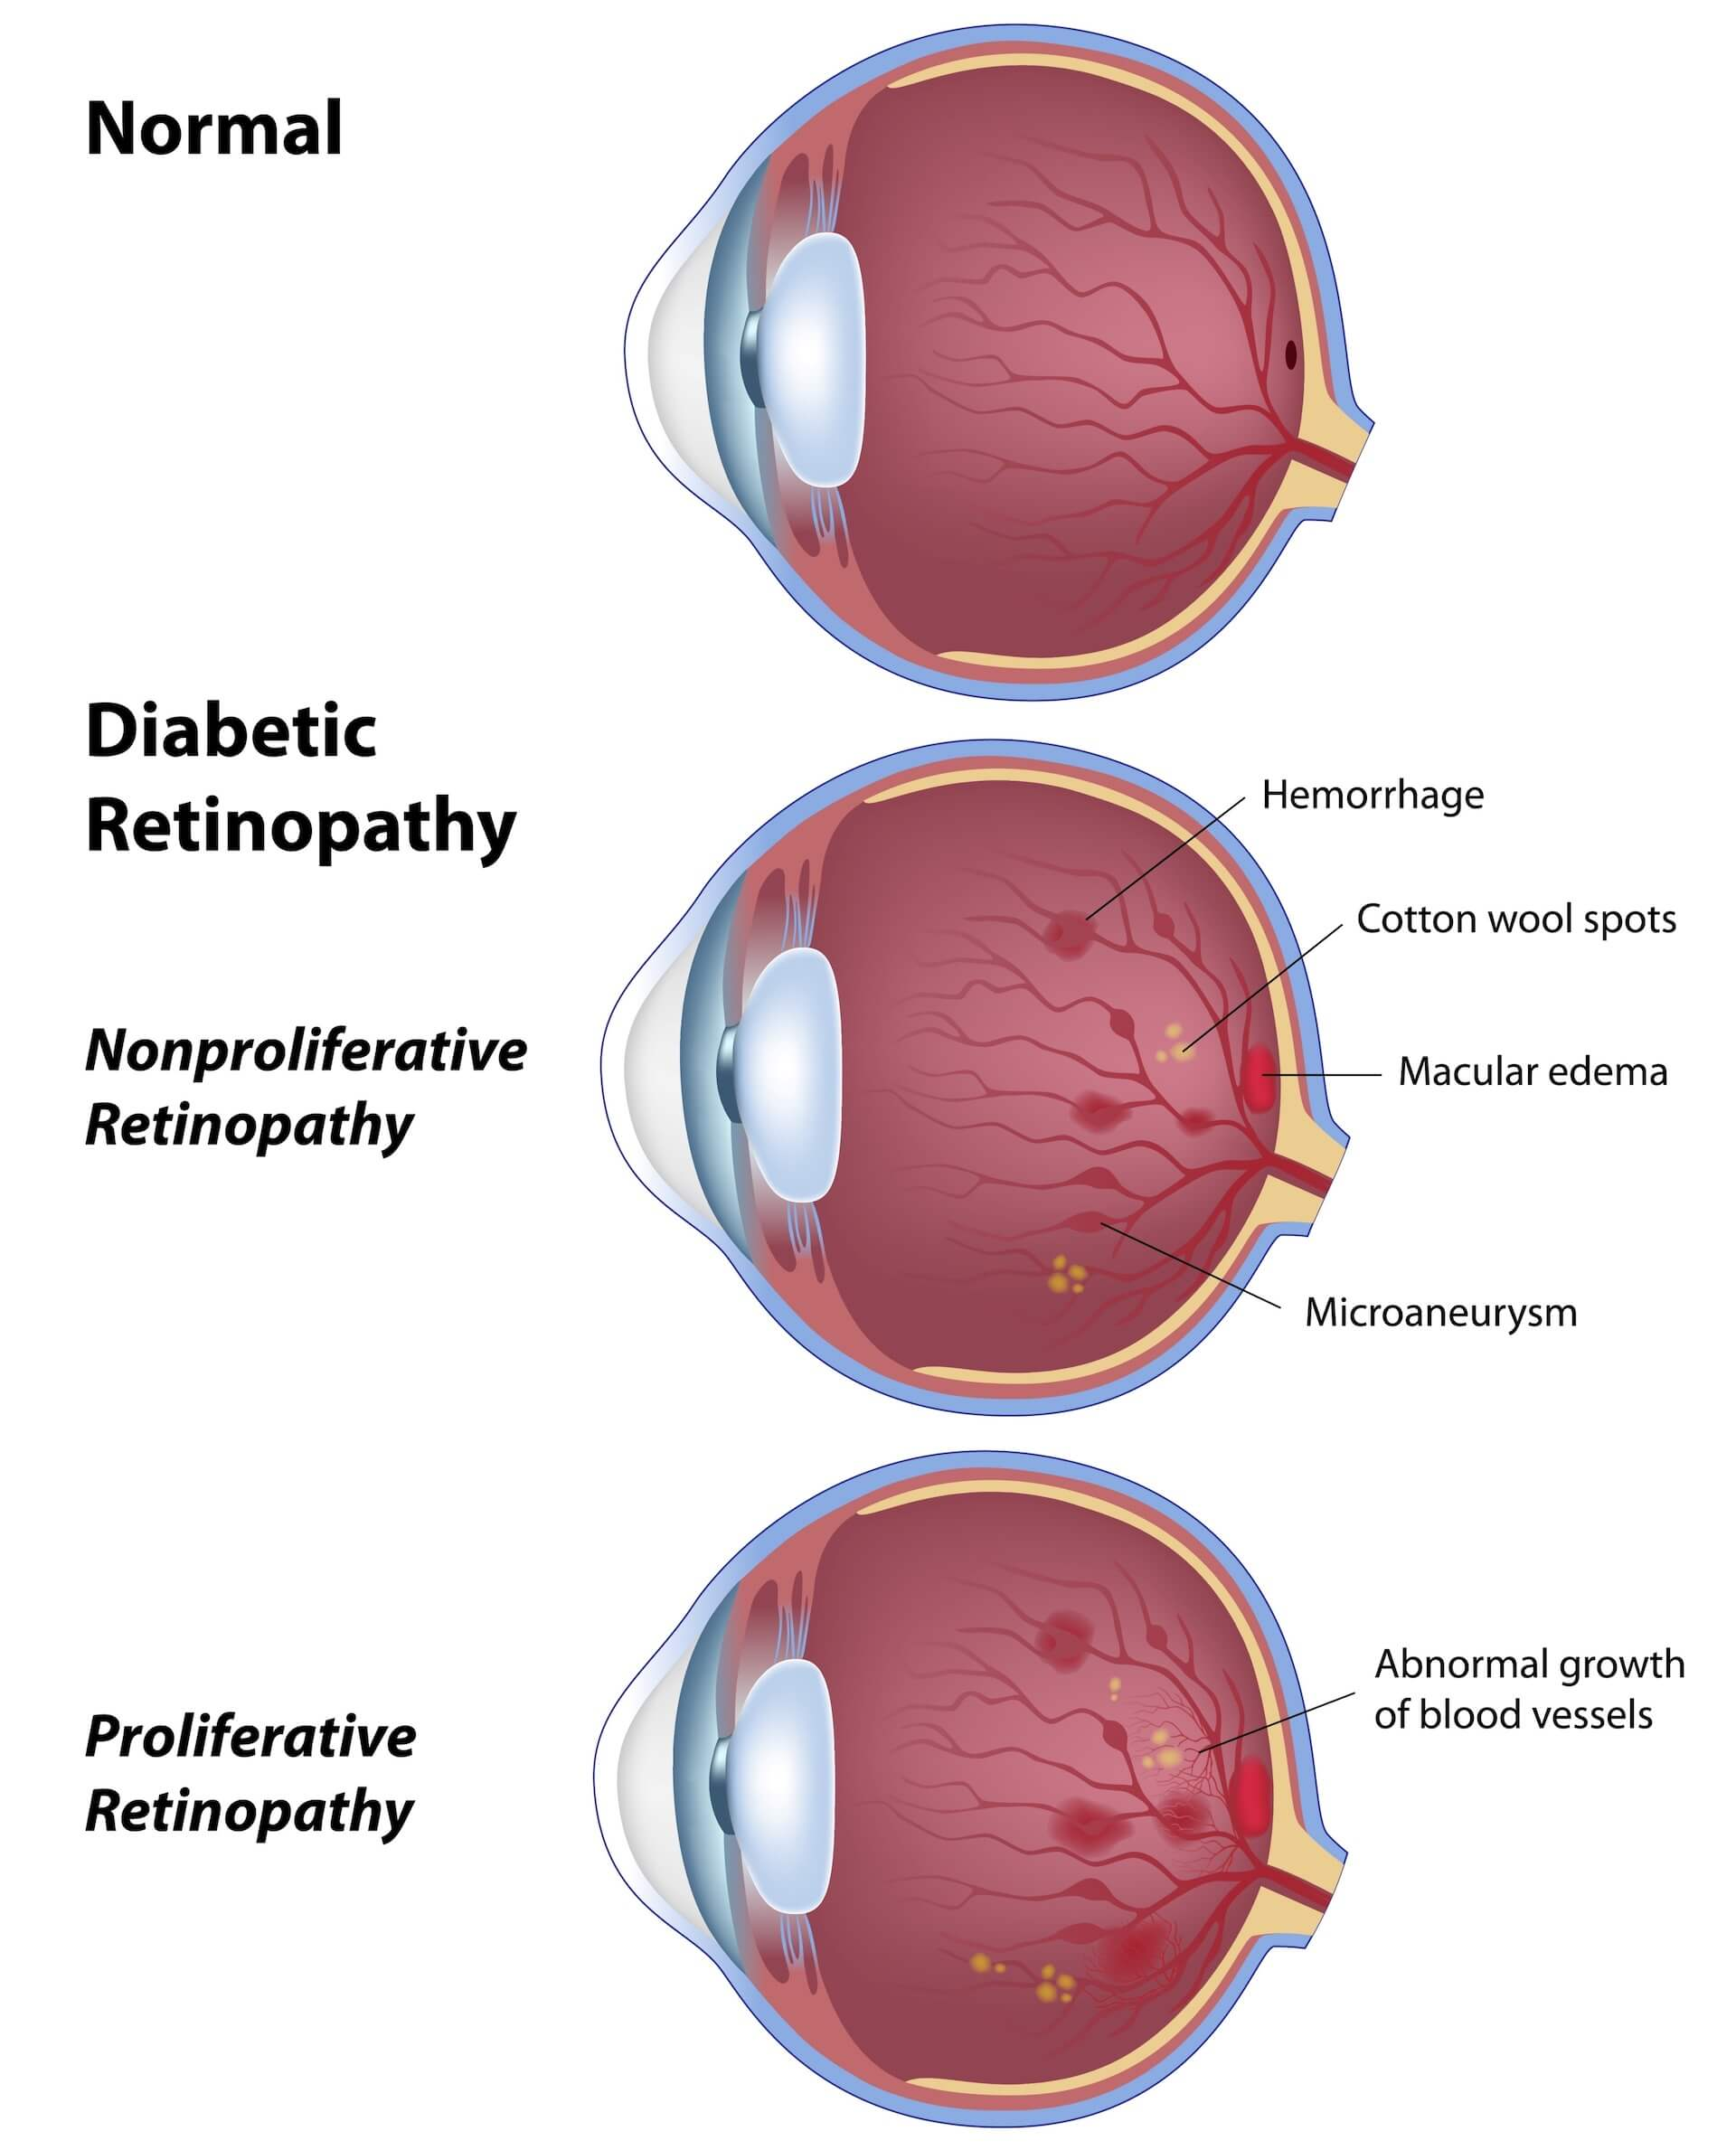 Diagram showing effects of diabetic retinopathy